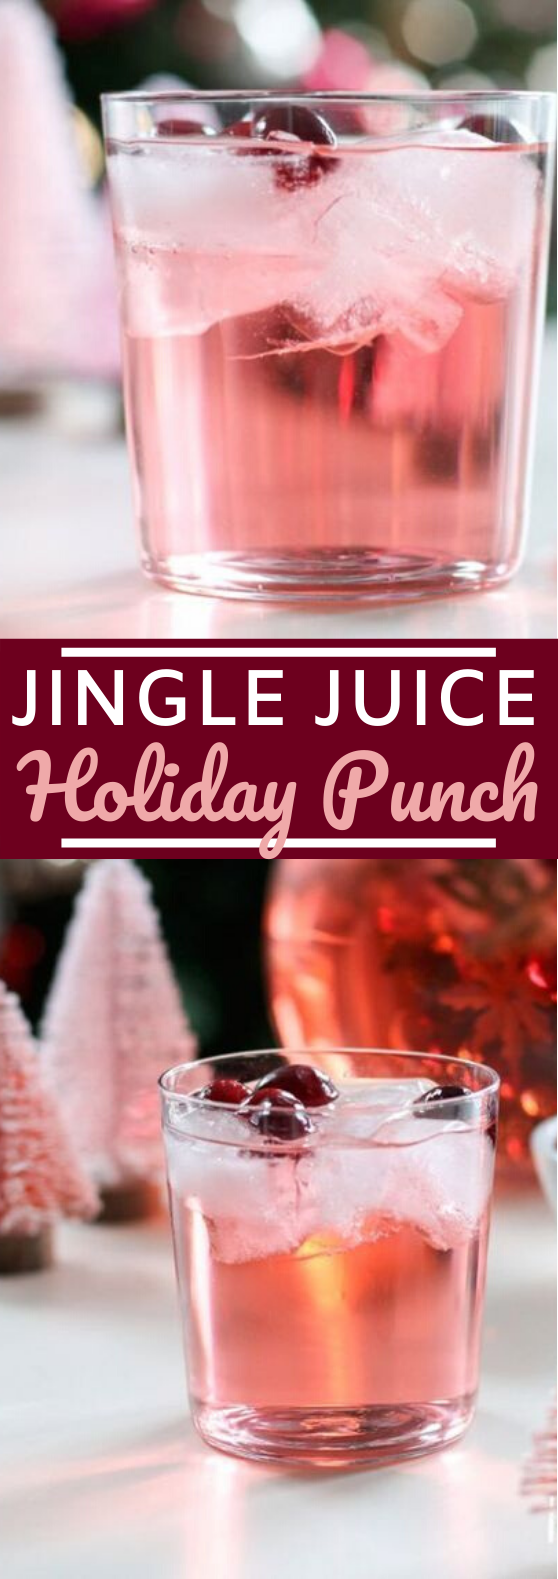 Jingle Juice Holiday Punch #drinks #punch #alcohol #christmas #cocktails